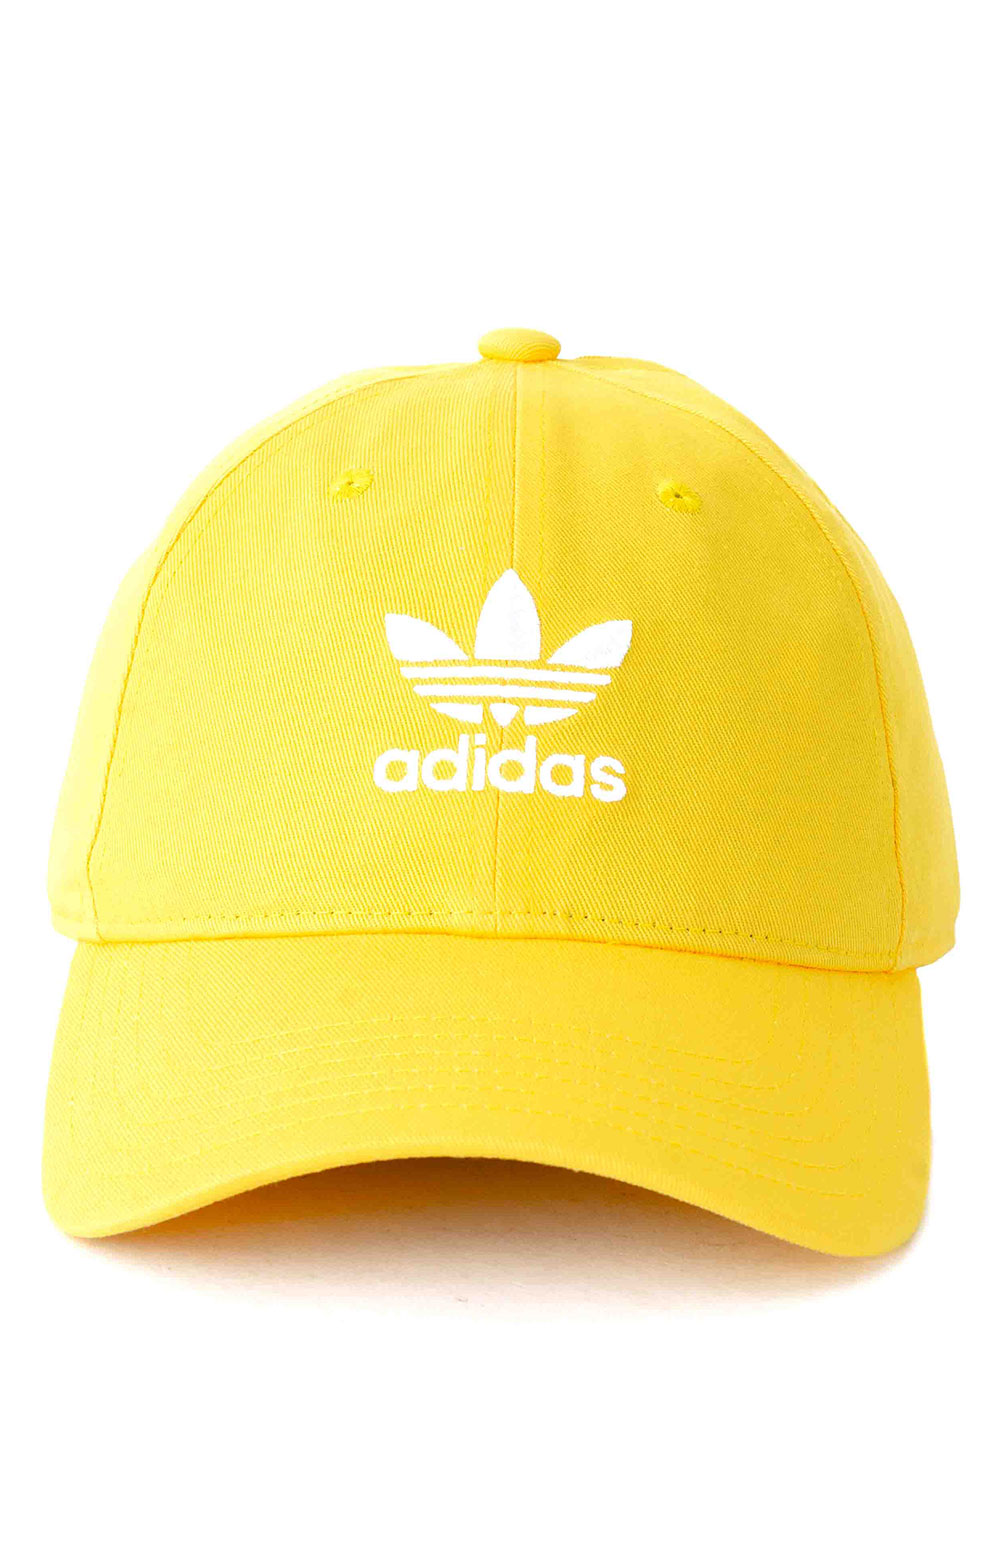 Originals Relaxed Strap-Back Hat - Yellow 2